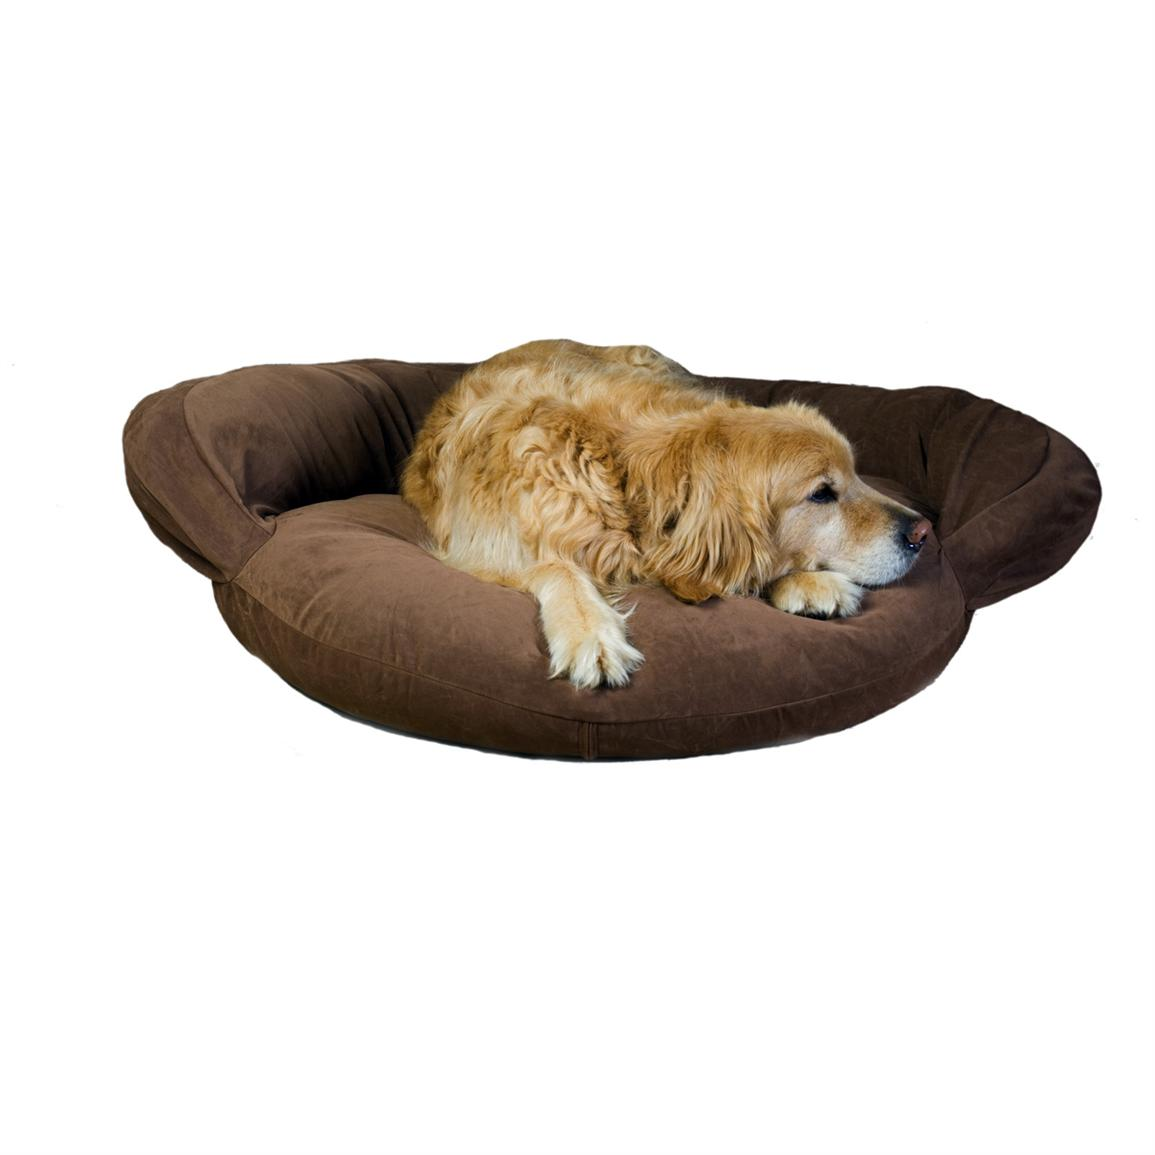 Carolina Pet Co. Microfiber Bolster Bed, Brown